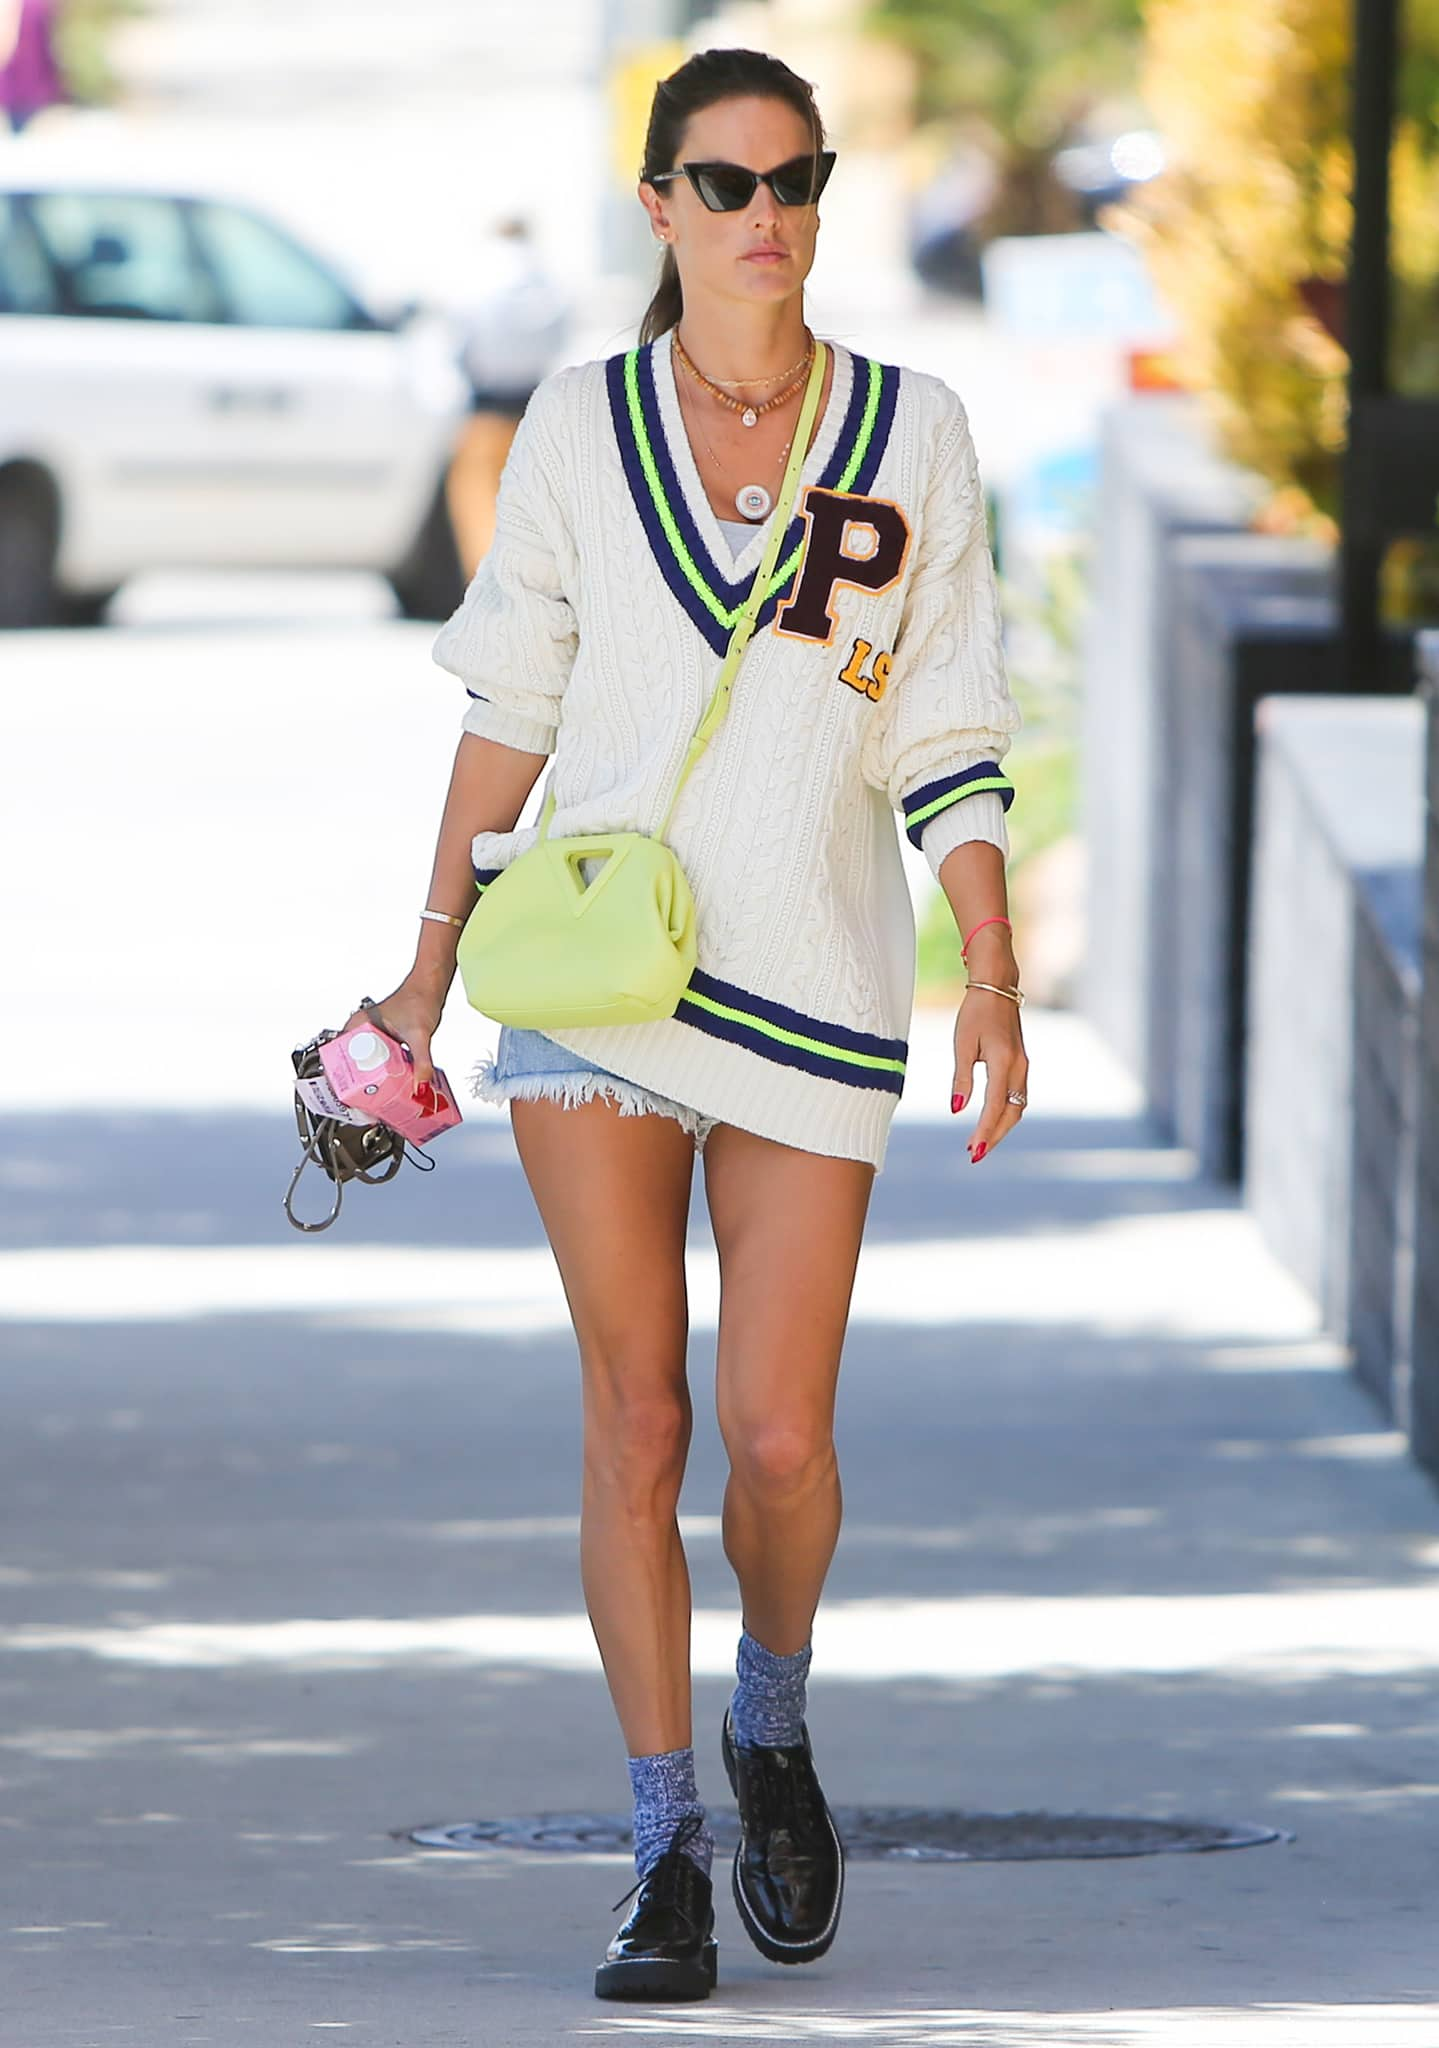 Alessandra Ambrosio puts on a leggy look while out and about in Santa Monica on June 10, 2021